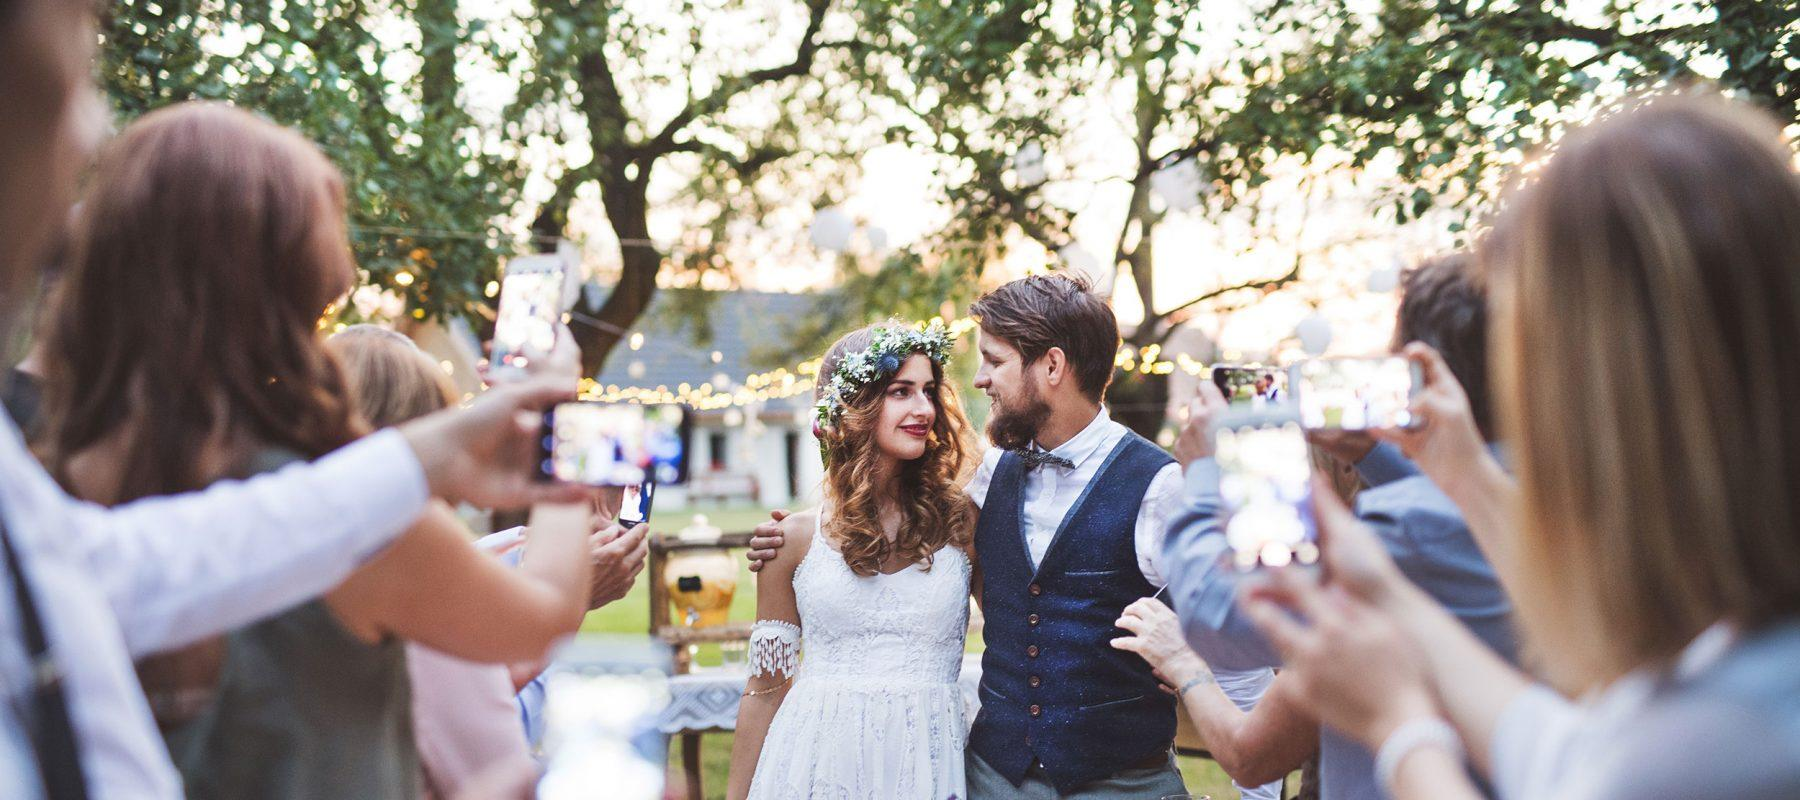 Your Phone is the Worst Wedding Accessory: Industry Experts Tell All